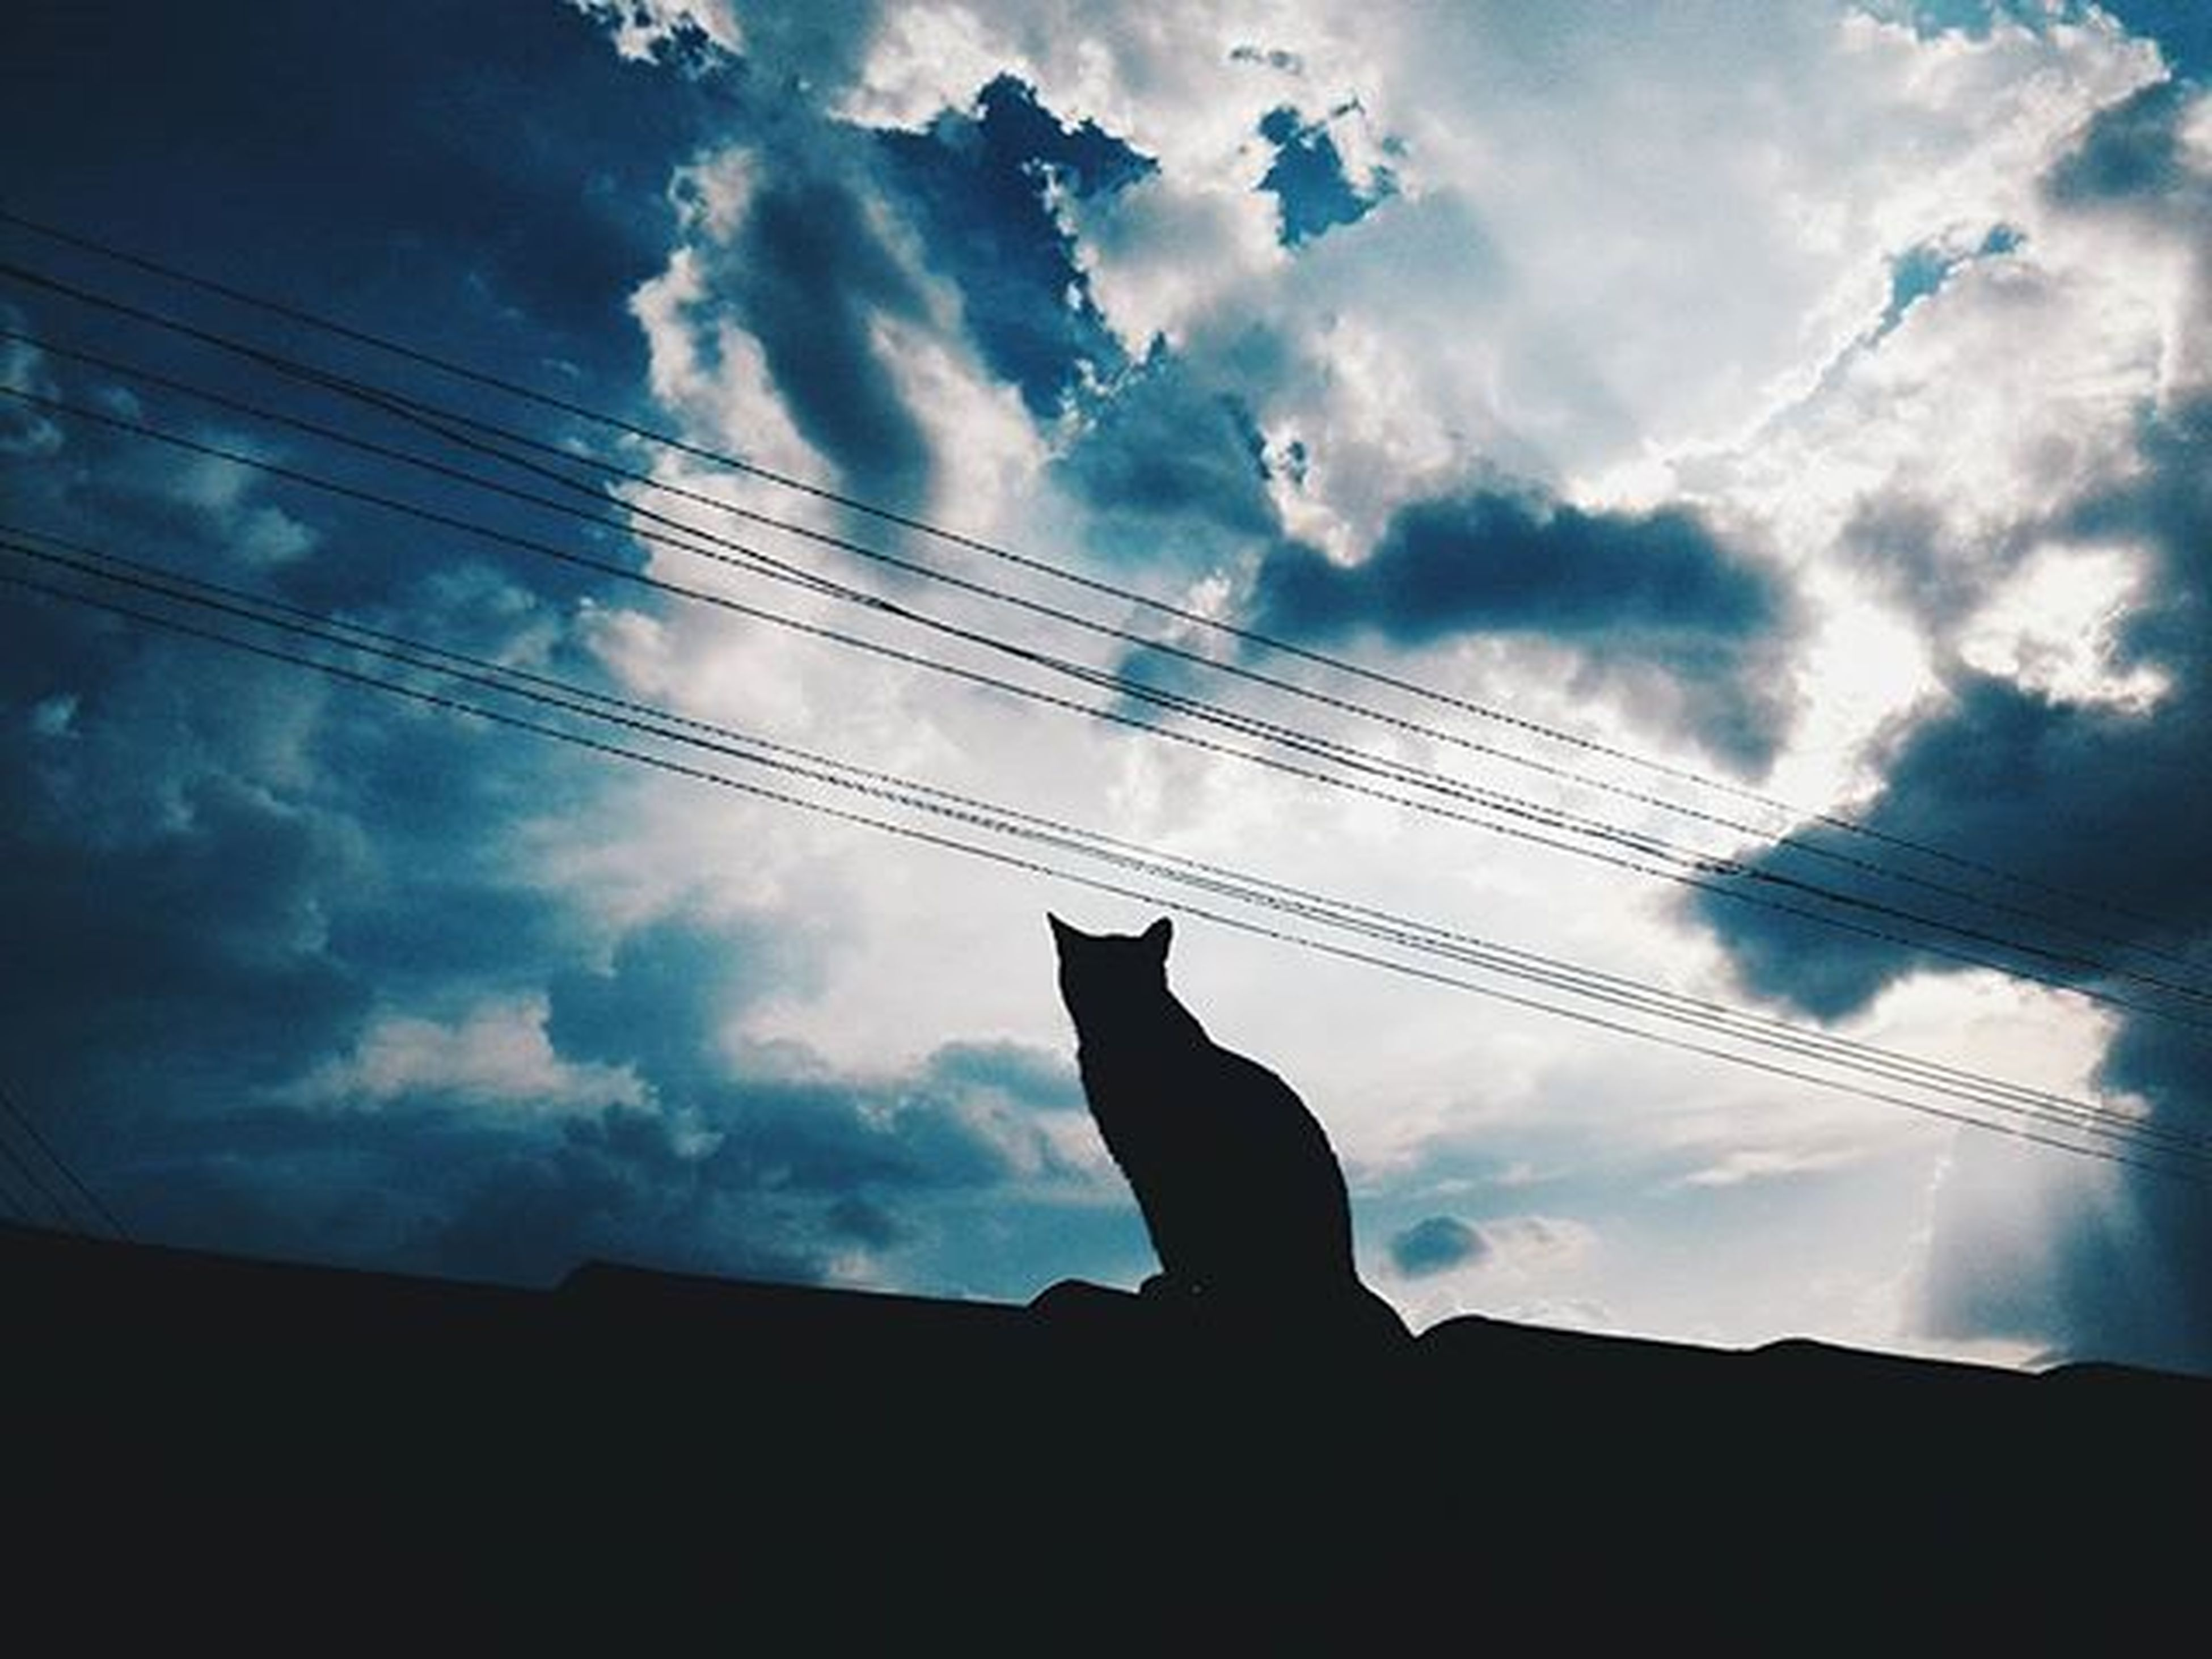 animal themes, sky, one animal, low angle view, cloud - sky, mammal, silhouette, pets, domestic animals, cloud, cloudy, domestic cat, power line, architecture, built structure, cable, building exterior, outdoors, cat, wildlife